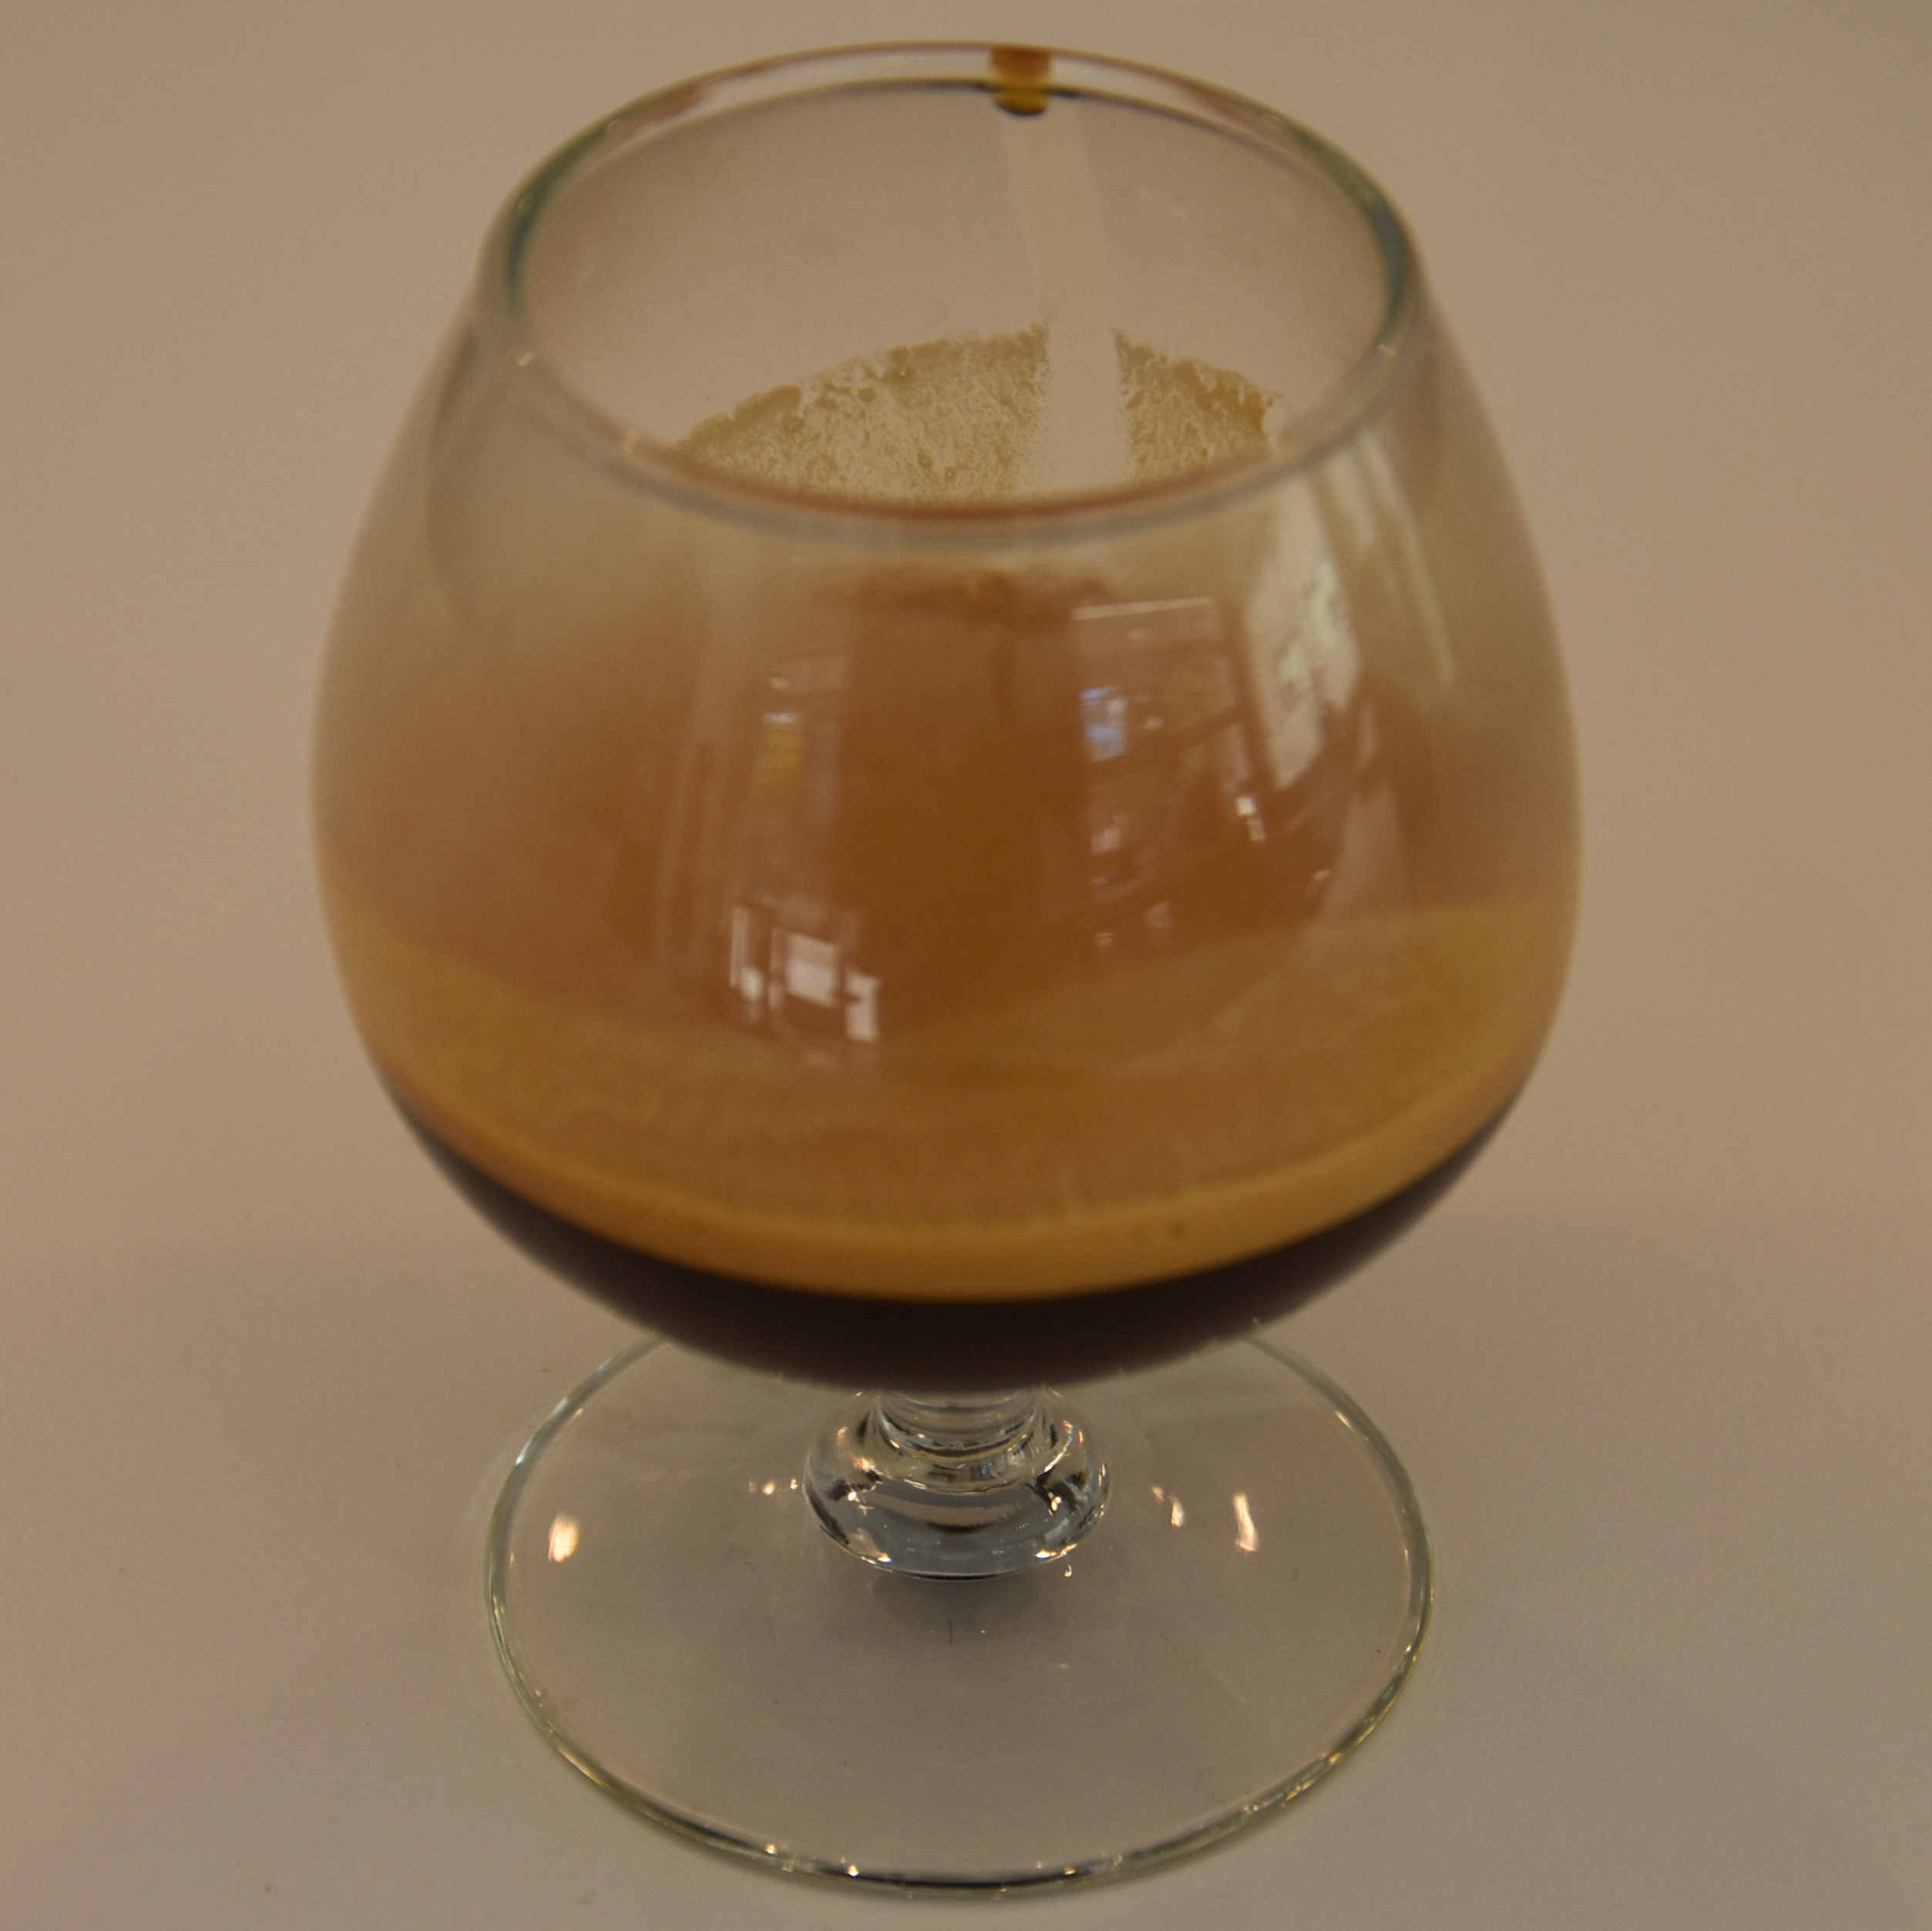 An exclusive naturally-occurring varietal from El Salvador, served as an espresso in a snifter glass at Madcap, Fulton in Grand Rapids.